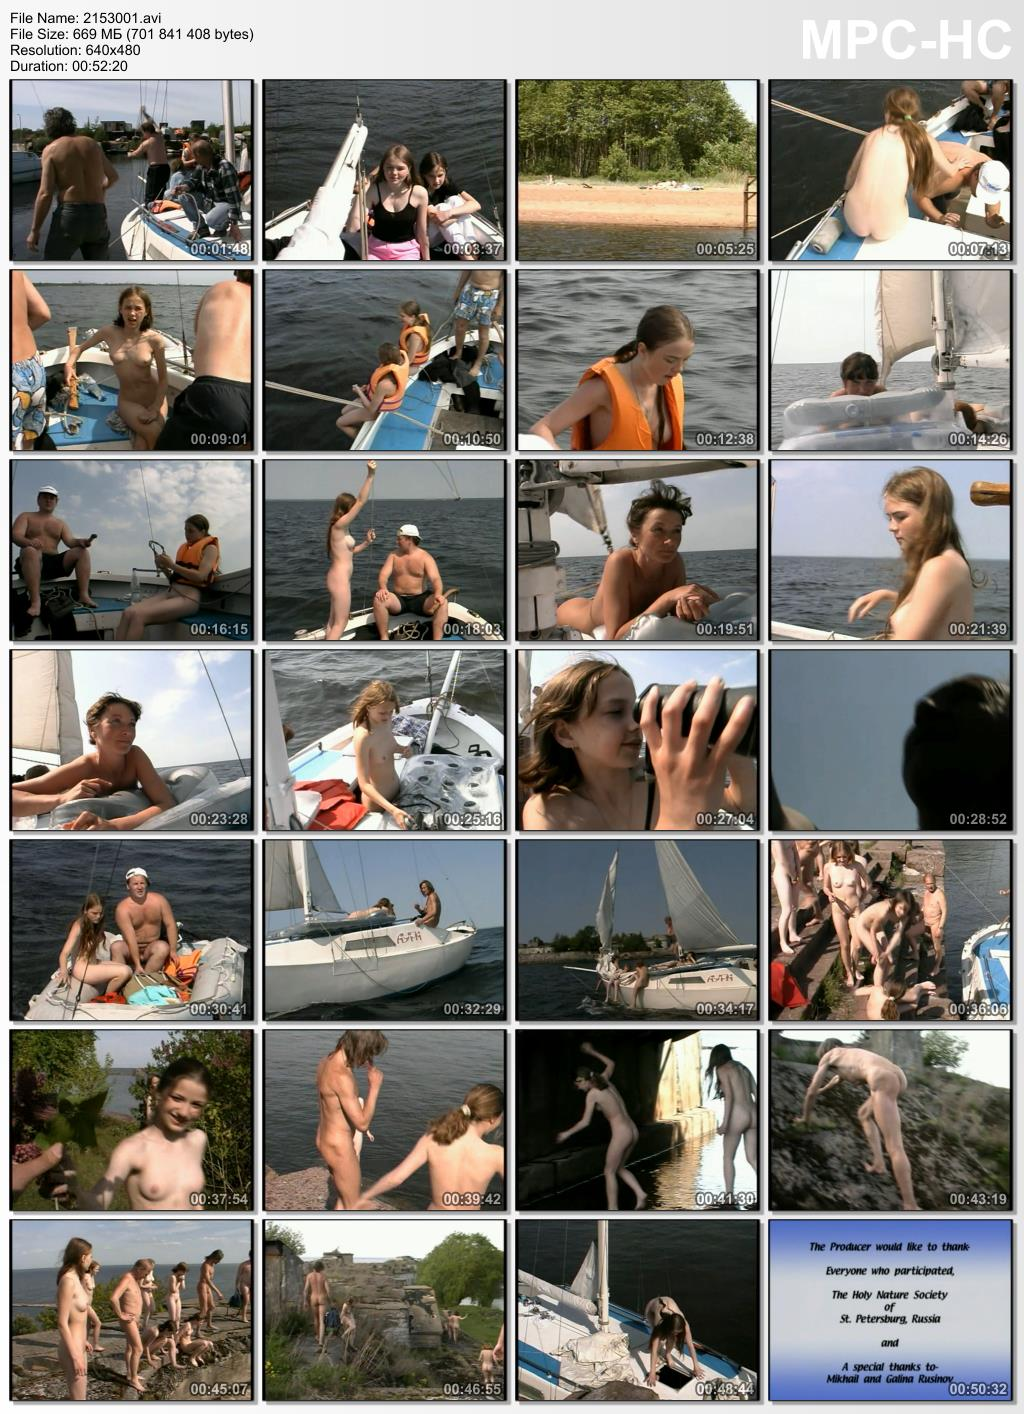 Family nudist sea voyage - A day of sailing